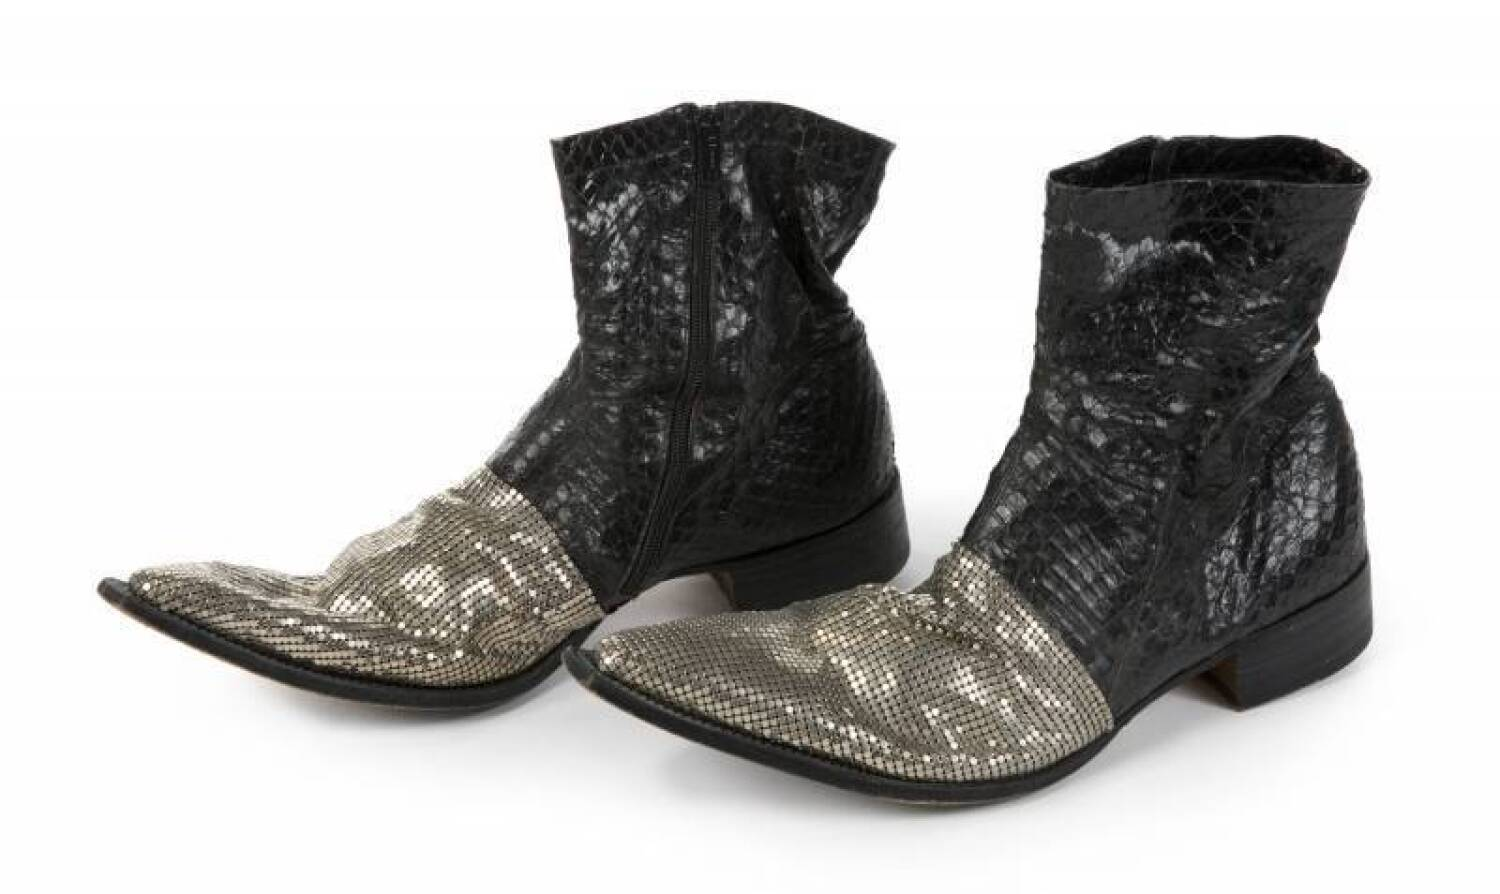 GENE SIMMONS GIANNI BARBATO BOOTS Current price: $1750